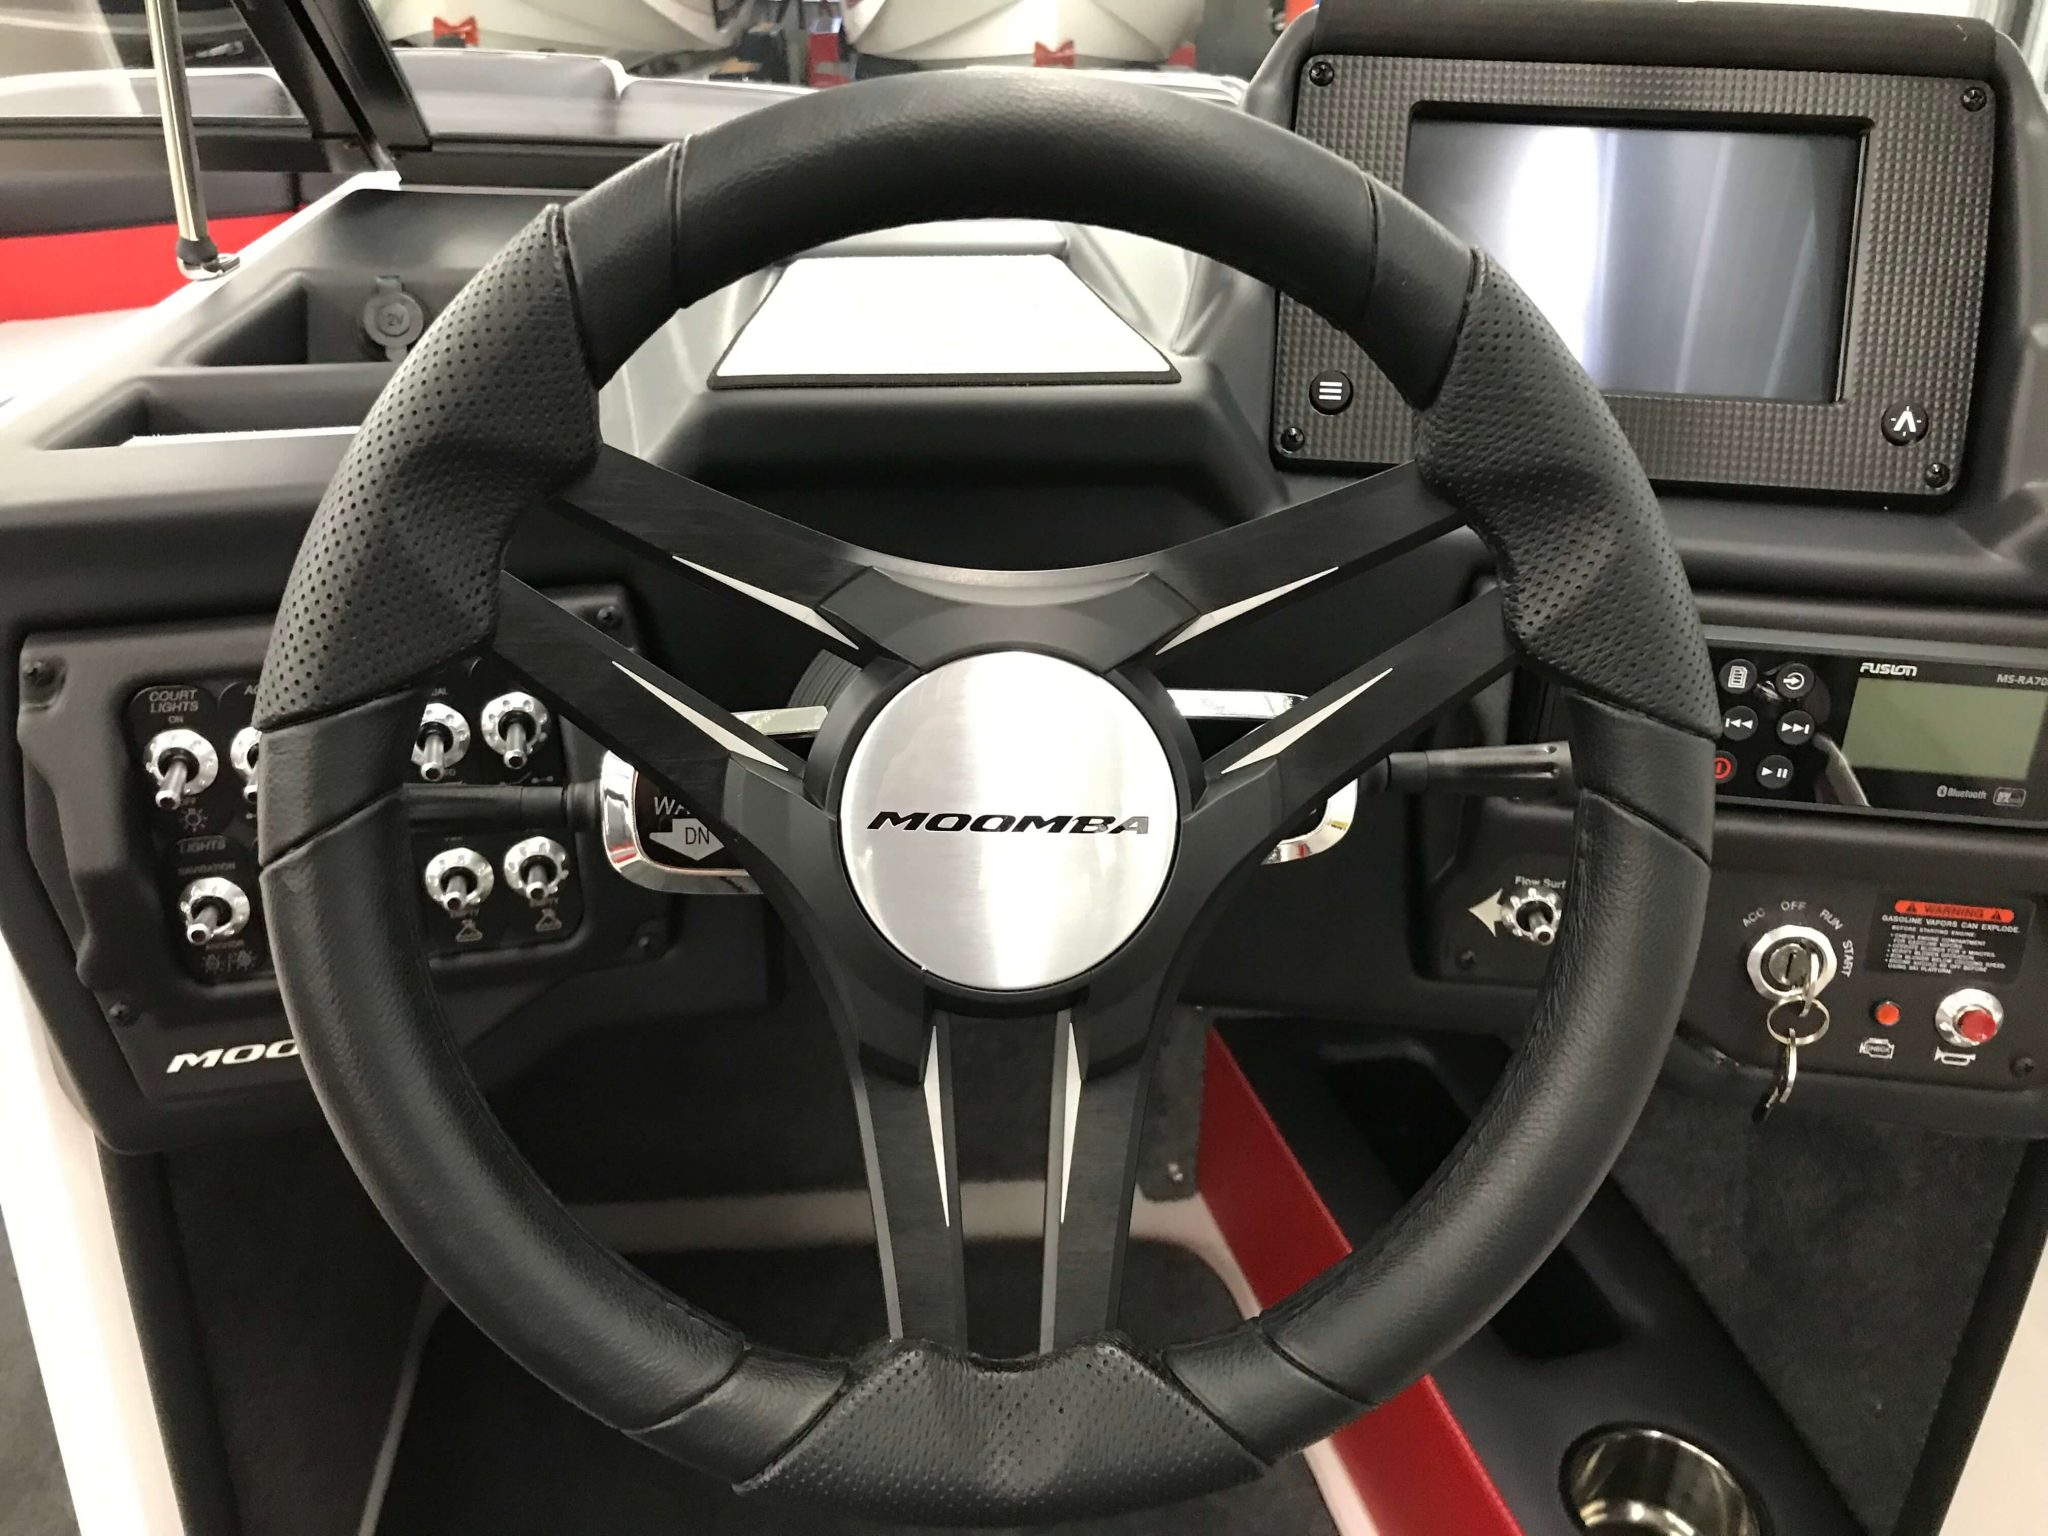 2019 Moomba Mondo Steering Wheel